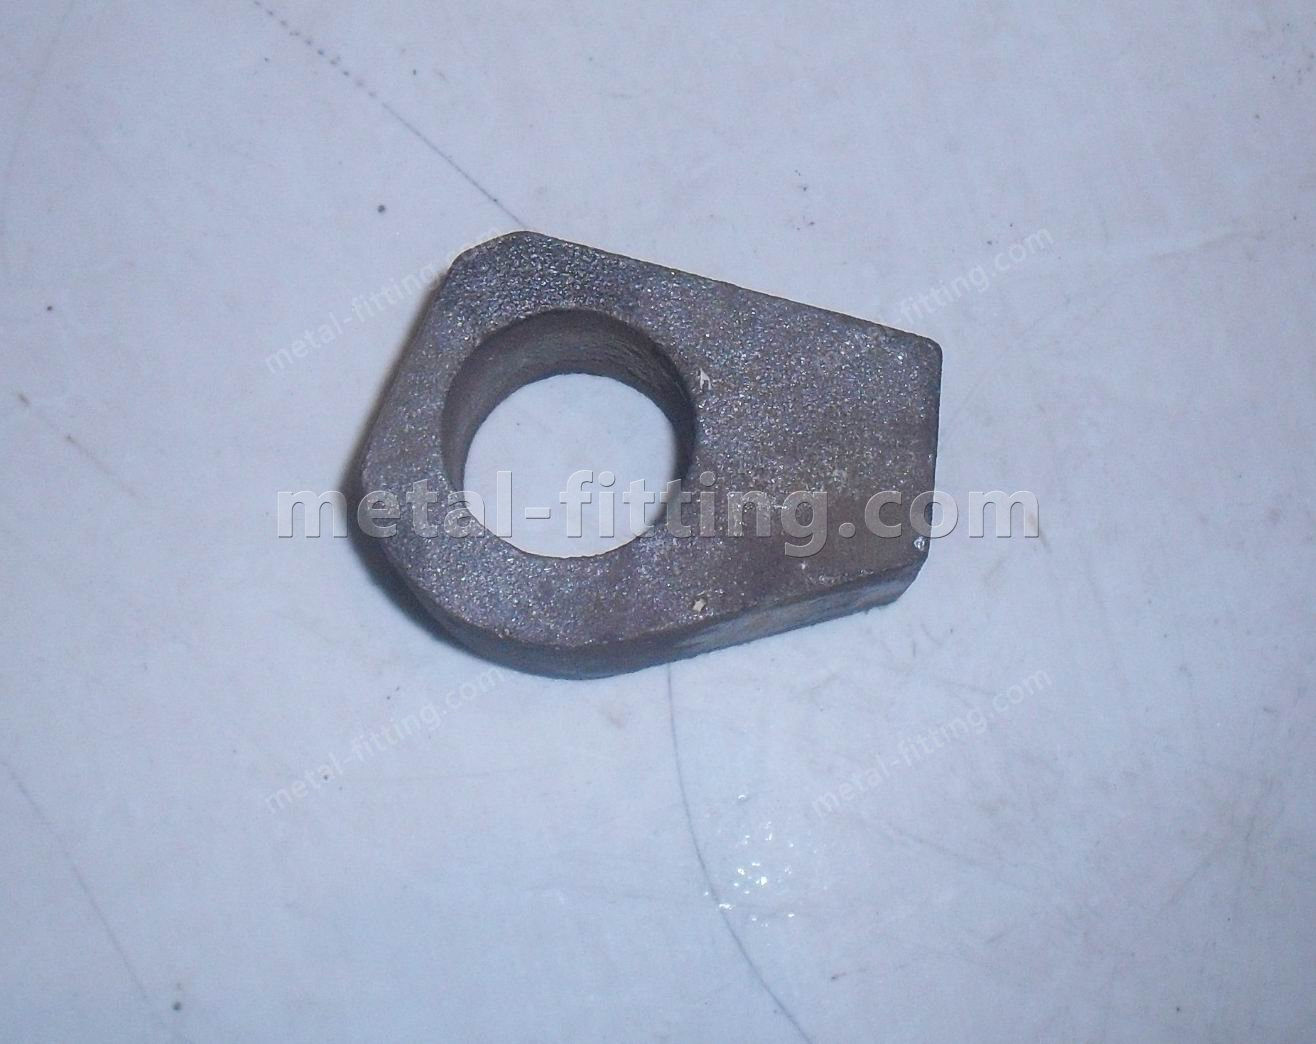 Steel Casted Parts and OEM Parts-建筑件 (12)